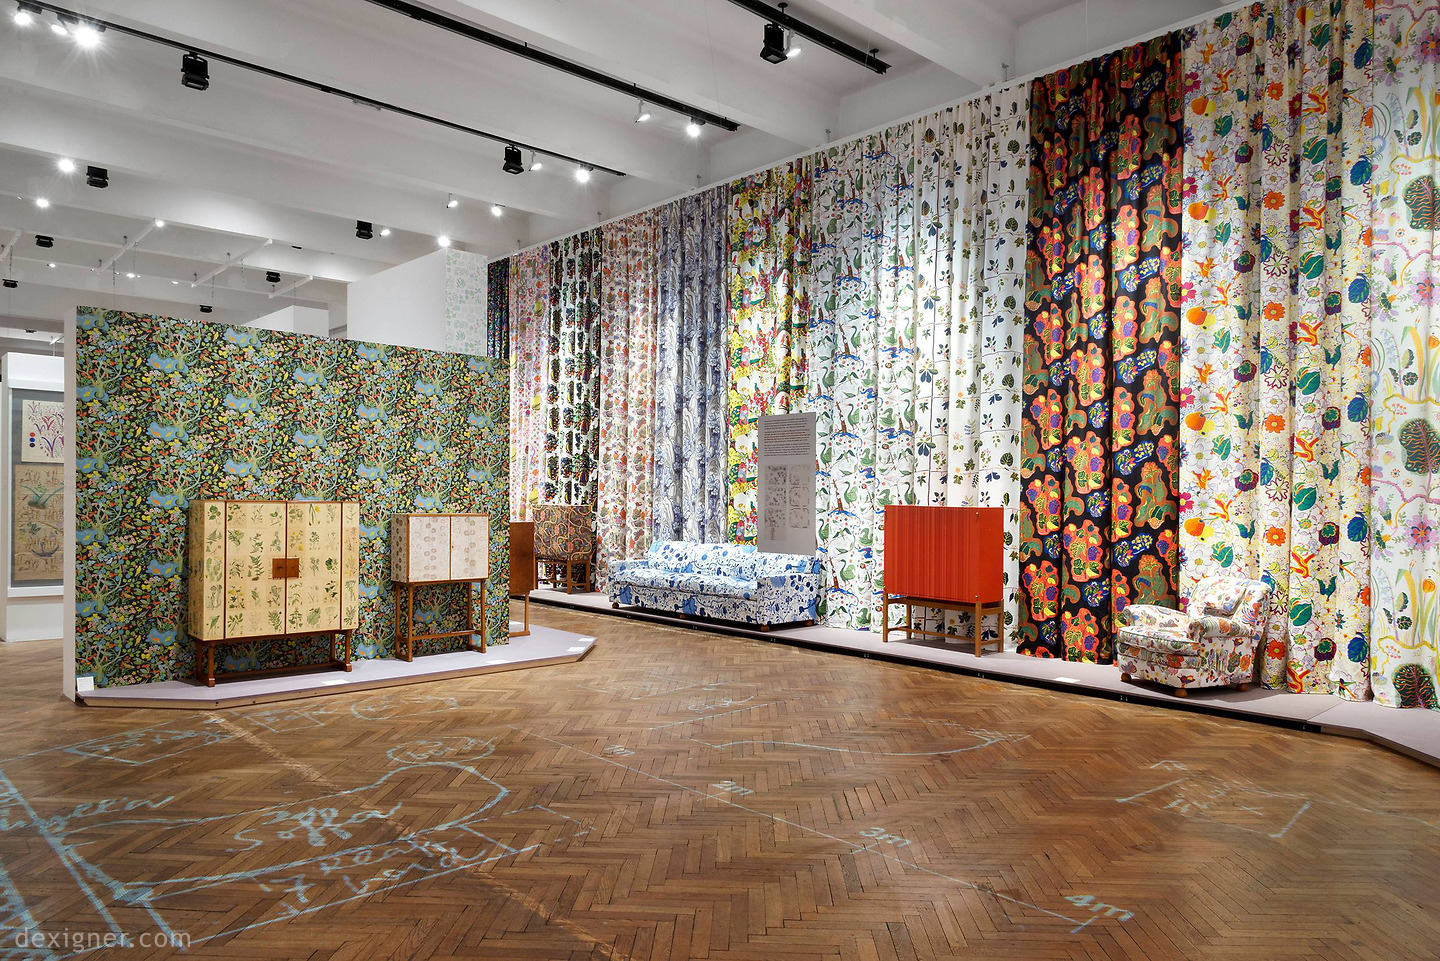 Josef_Frank_Against_Design_02_gallery